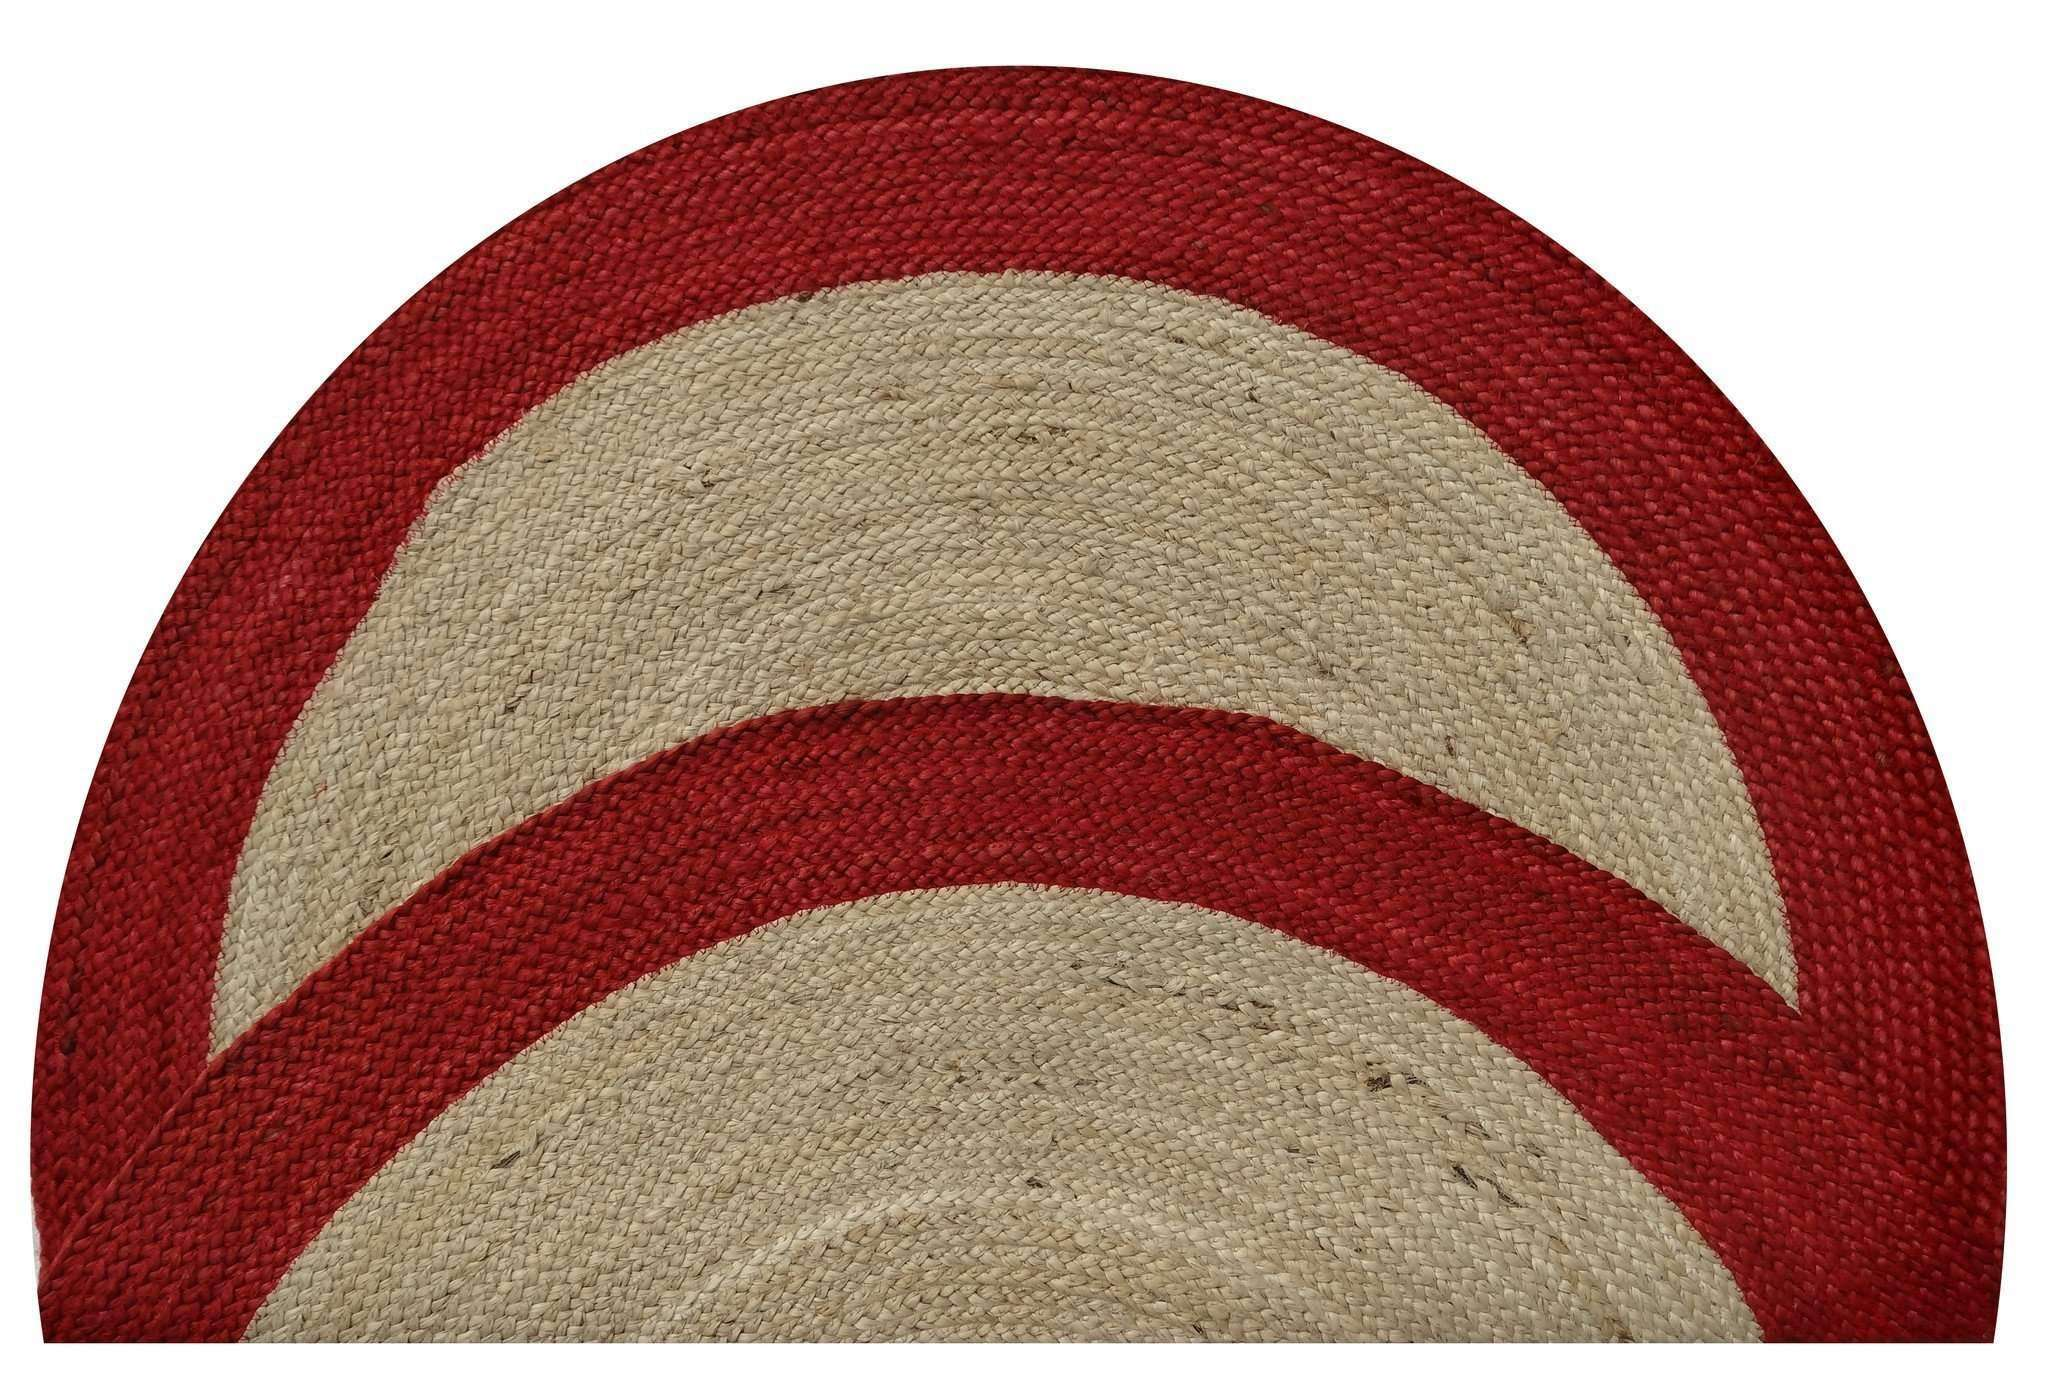 Dot Border Jute Round Red Firebox Rug, [cheapest rugs online], [au rugs], [rugs australia]